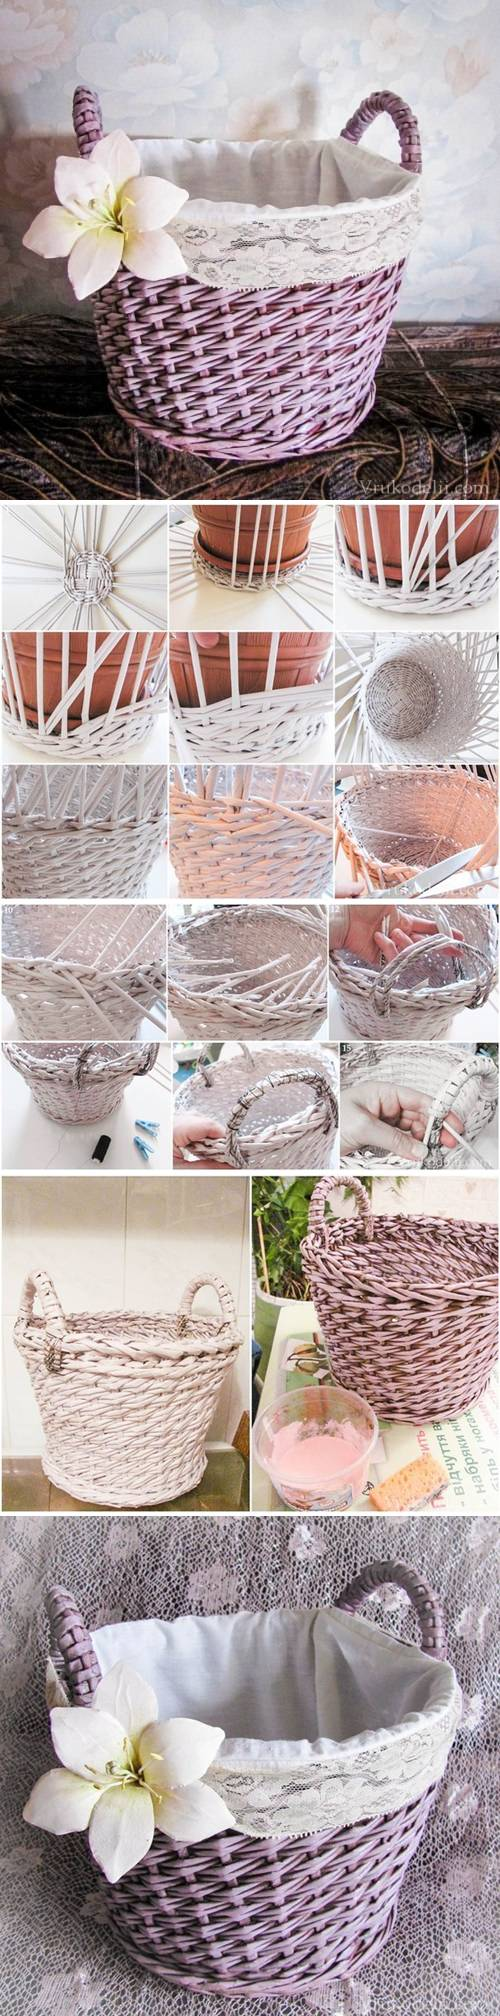 How to make Newspaper Basket Layer Weave step by step DIY tutorial instructions